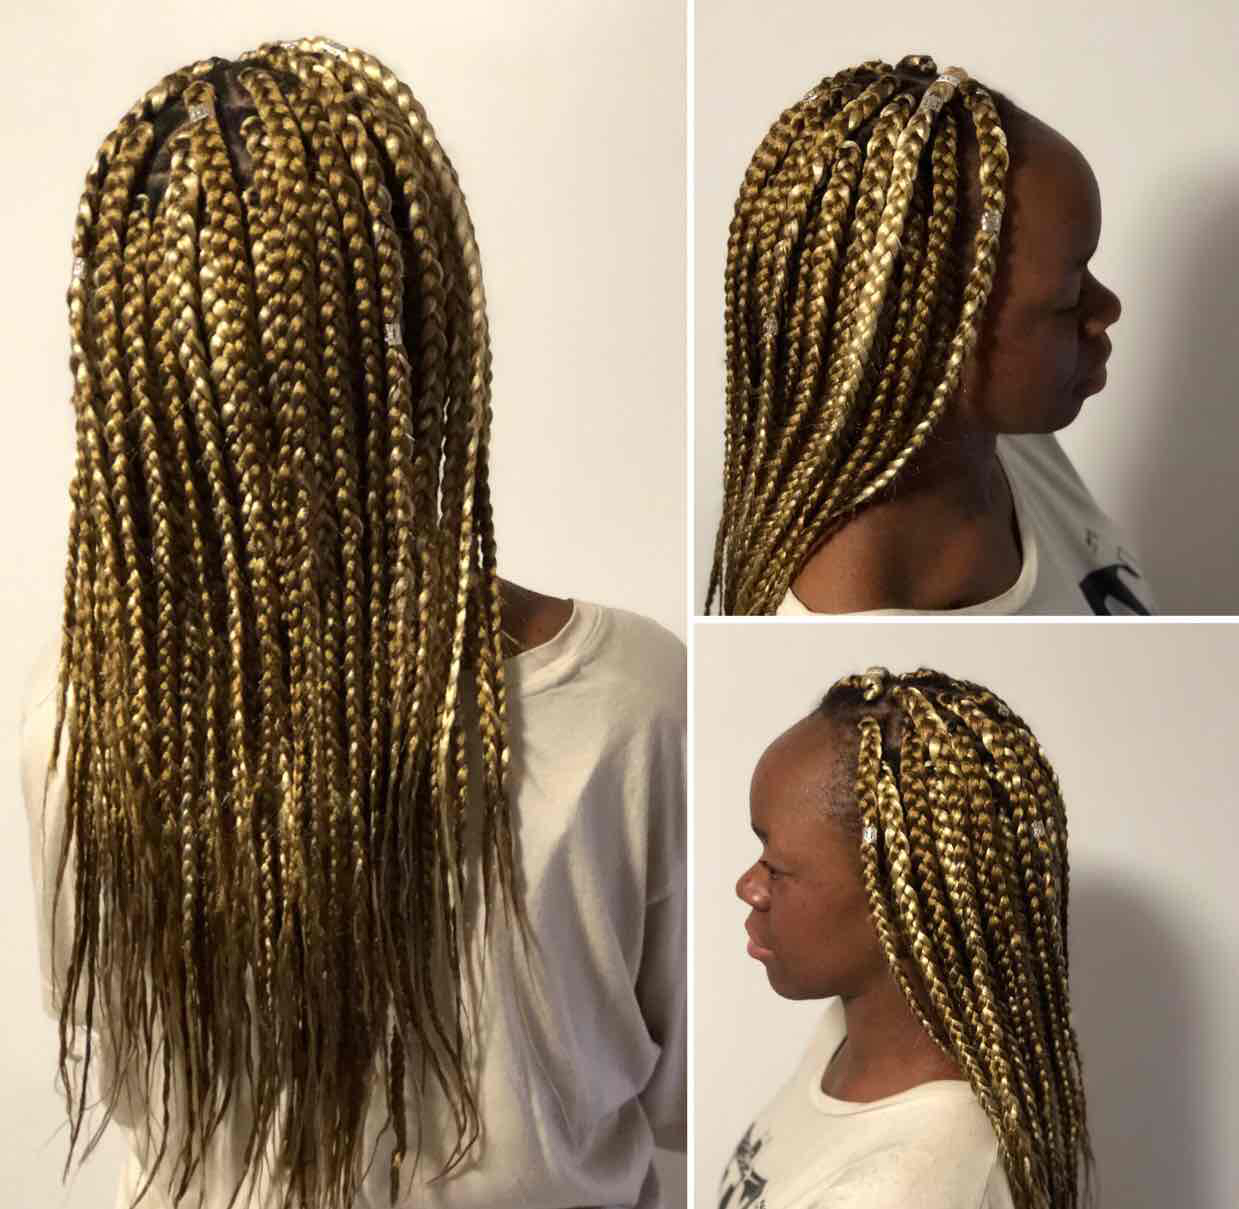 salon de coiffure afro tresse tresses box braids crochet braids vanilles tissages paris 75 77 78 91 92 93 94 95 BTKYRTET